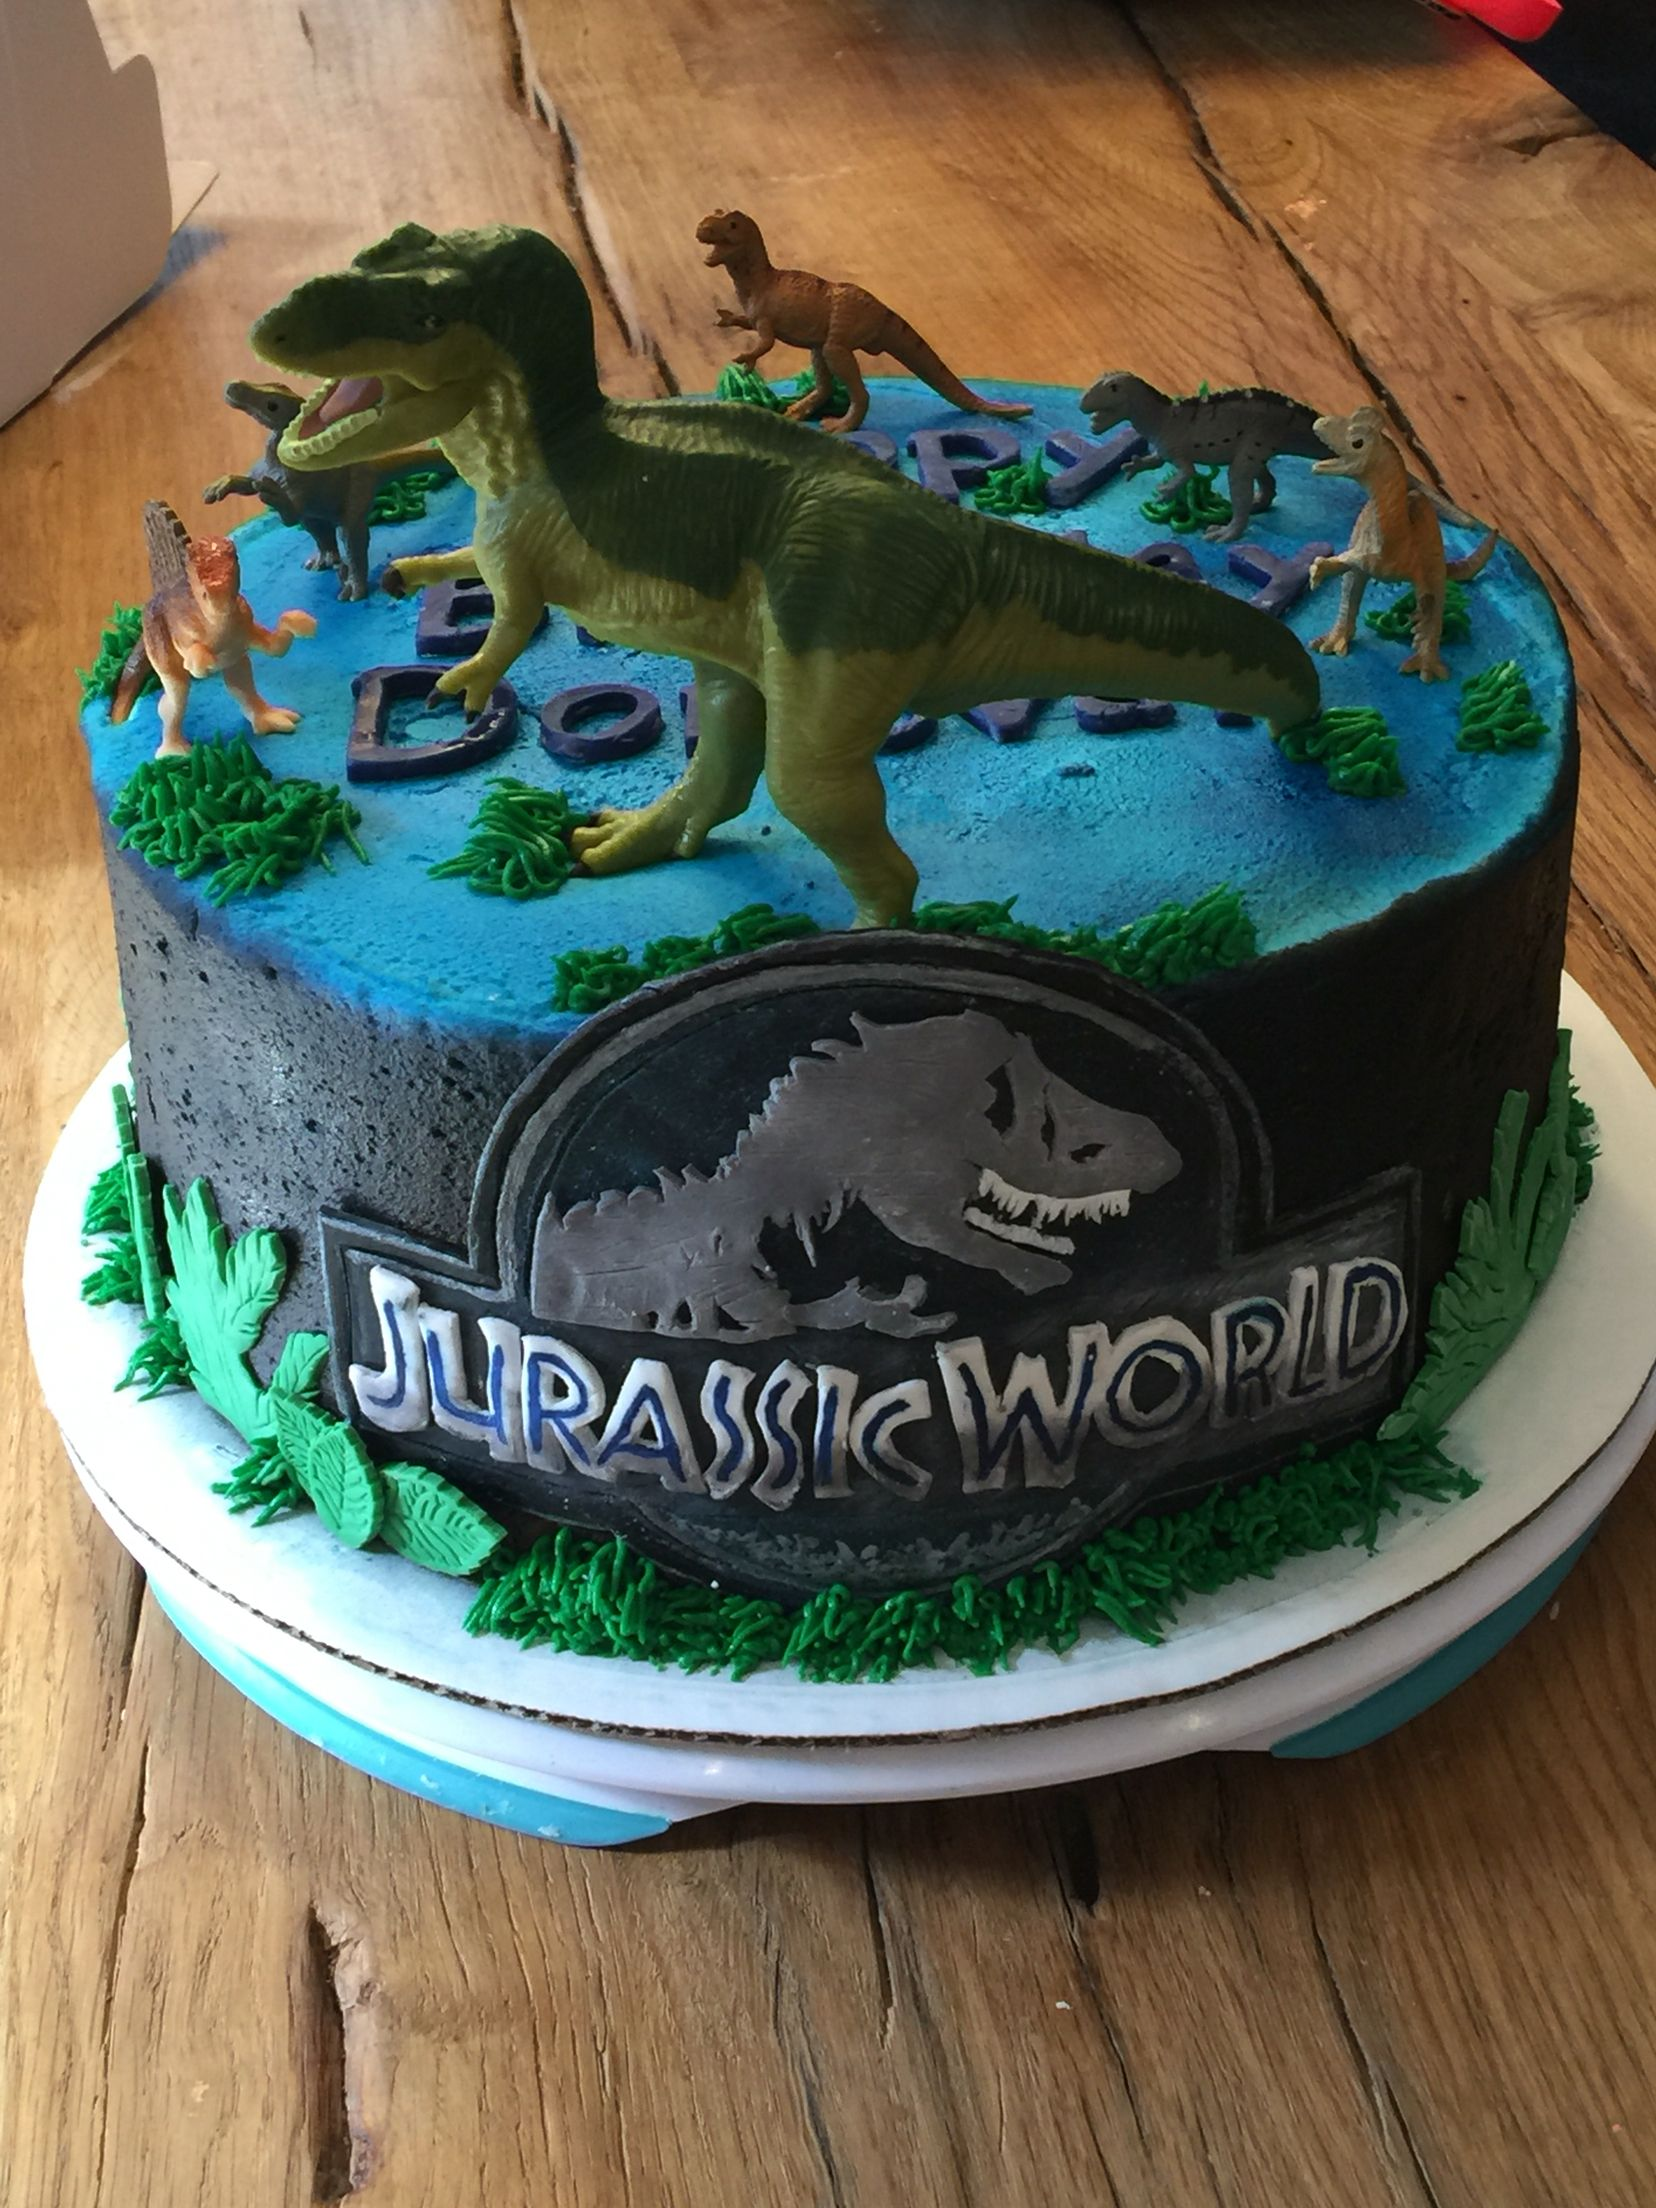 Jurassic World cake. Logo \u0026 greenery all done in modeling